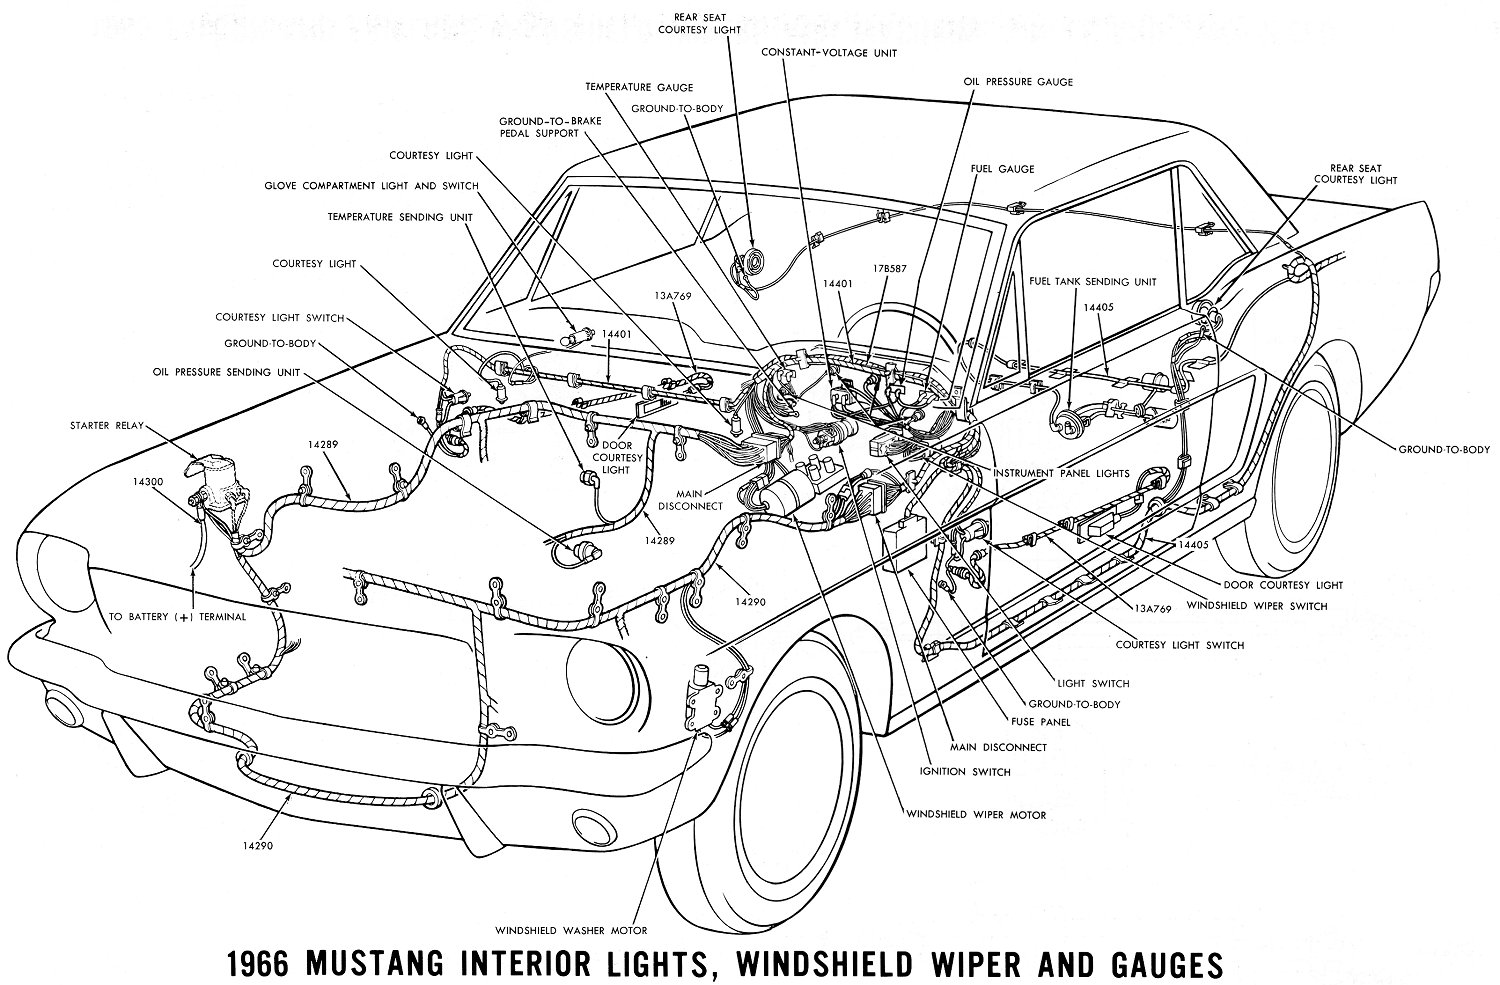 66 mustang dash wiring diagram 66 mustang engine wiring diagram 1966 mustang wiring diagrams - average joe restoration